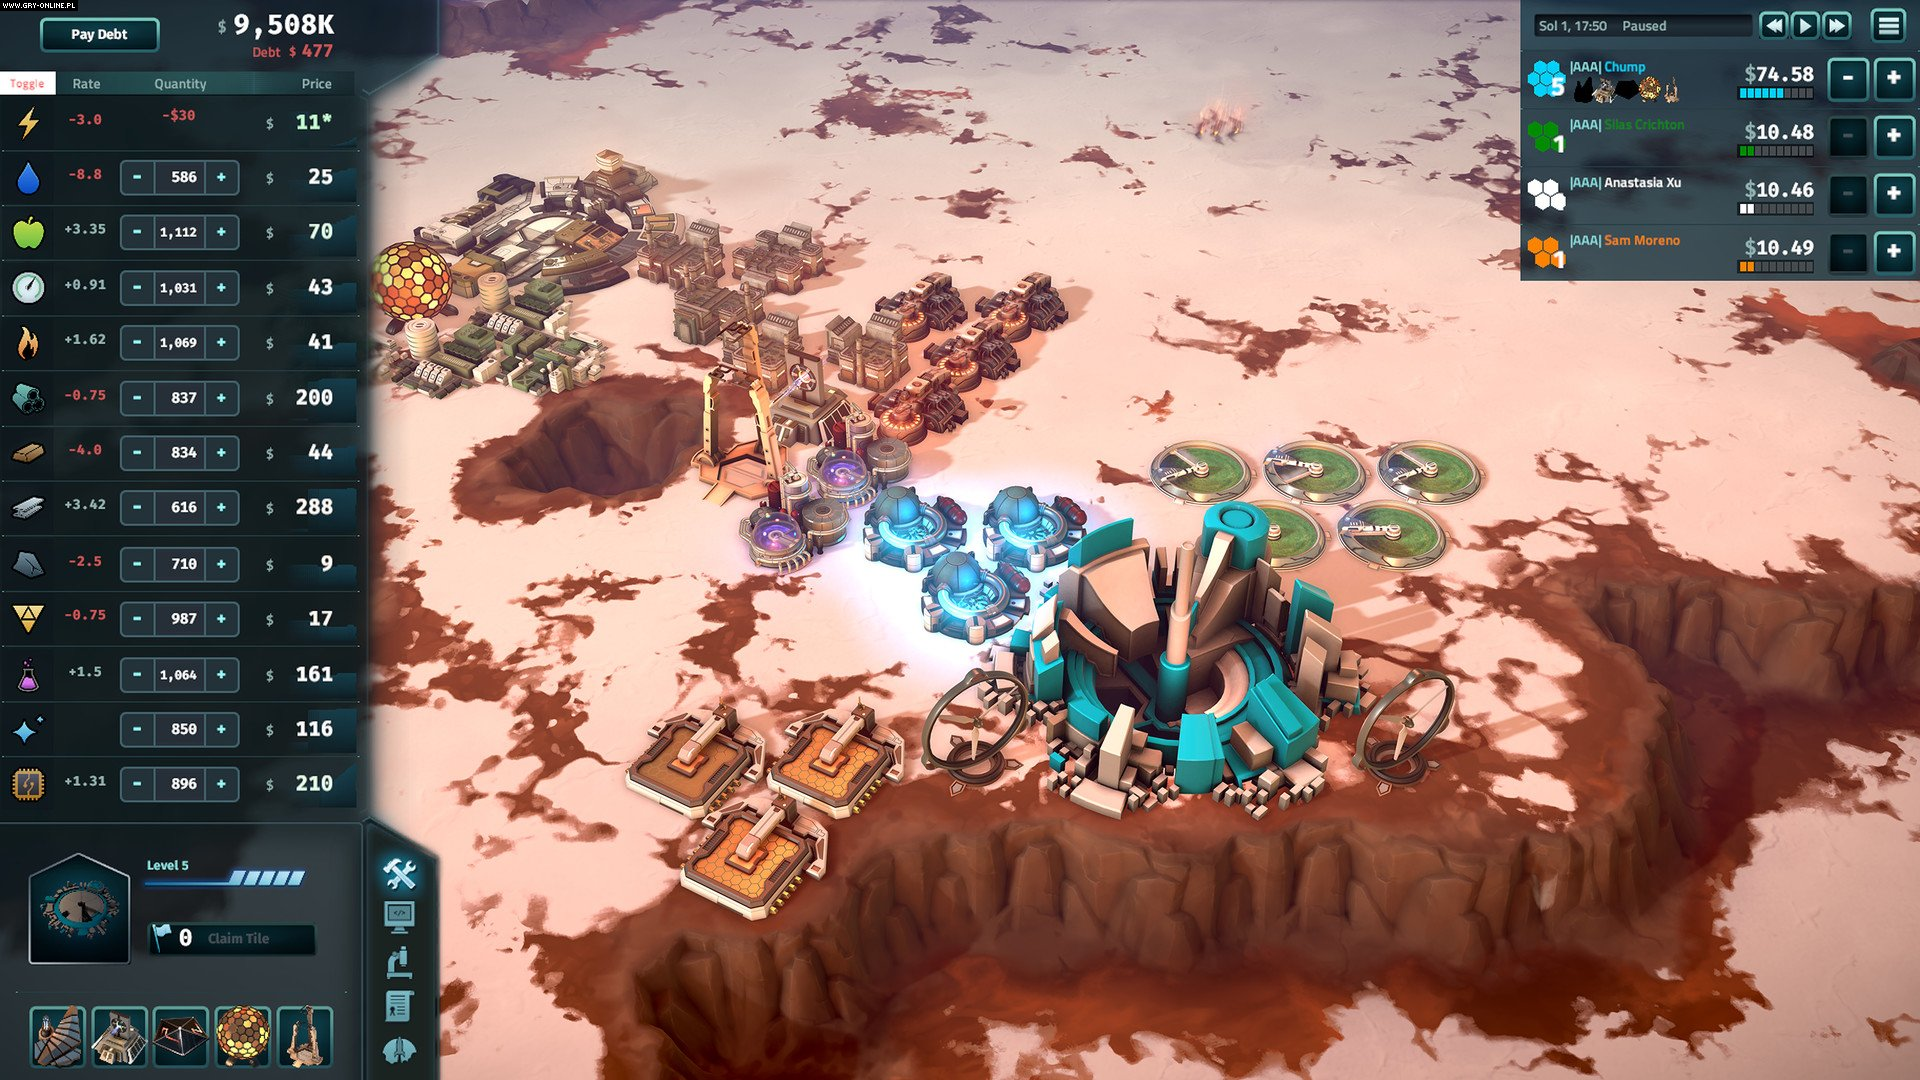 Offworld Trading Company PC Gry Screen 8/9, Mohawk Games, Stardock Corporation